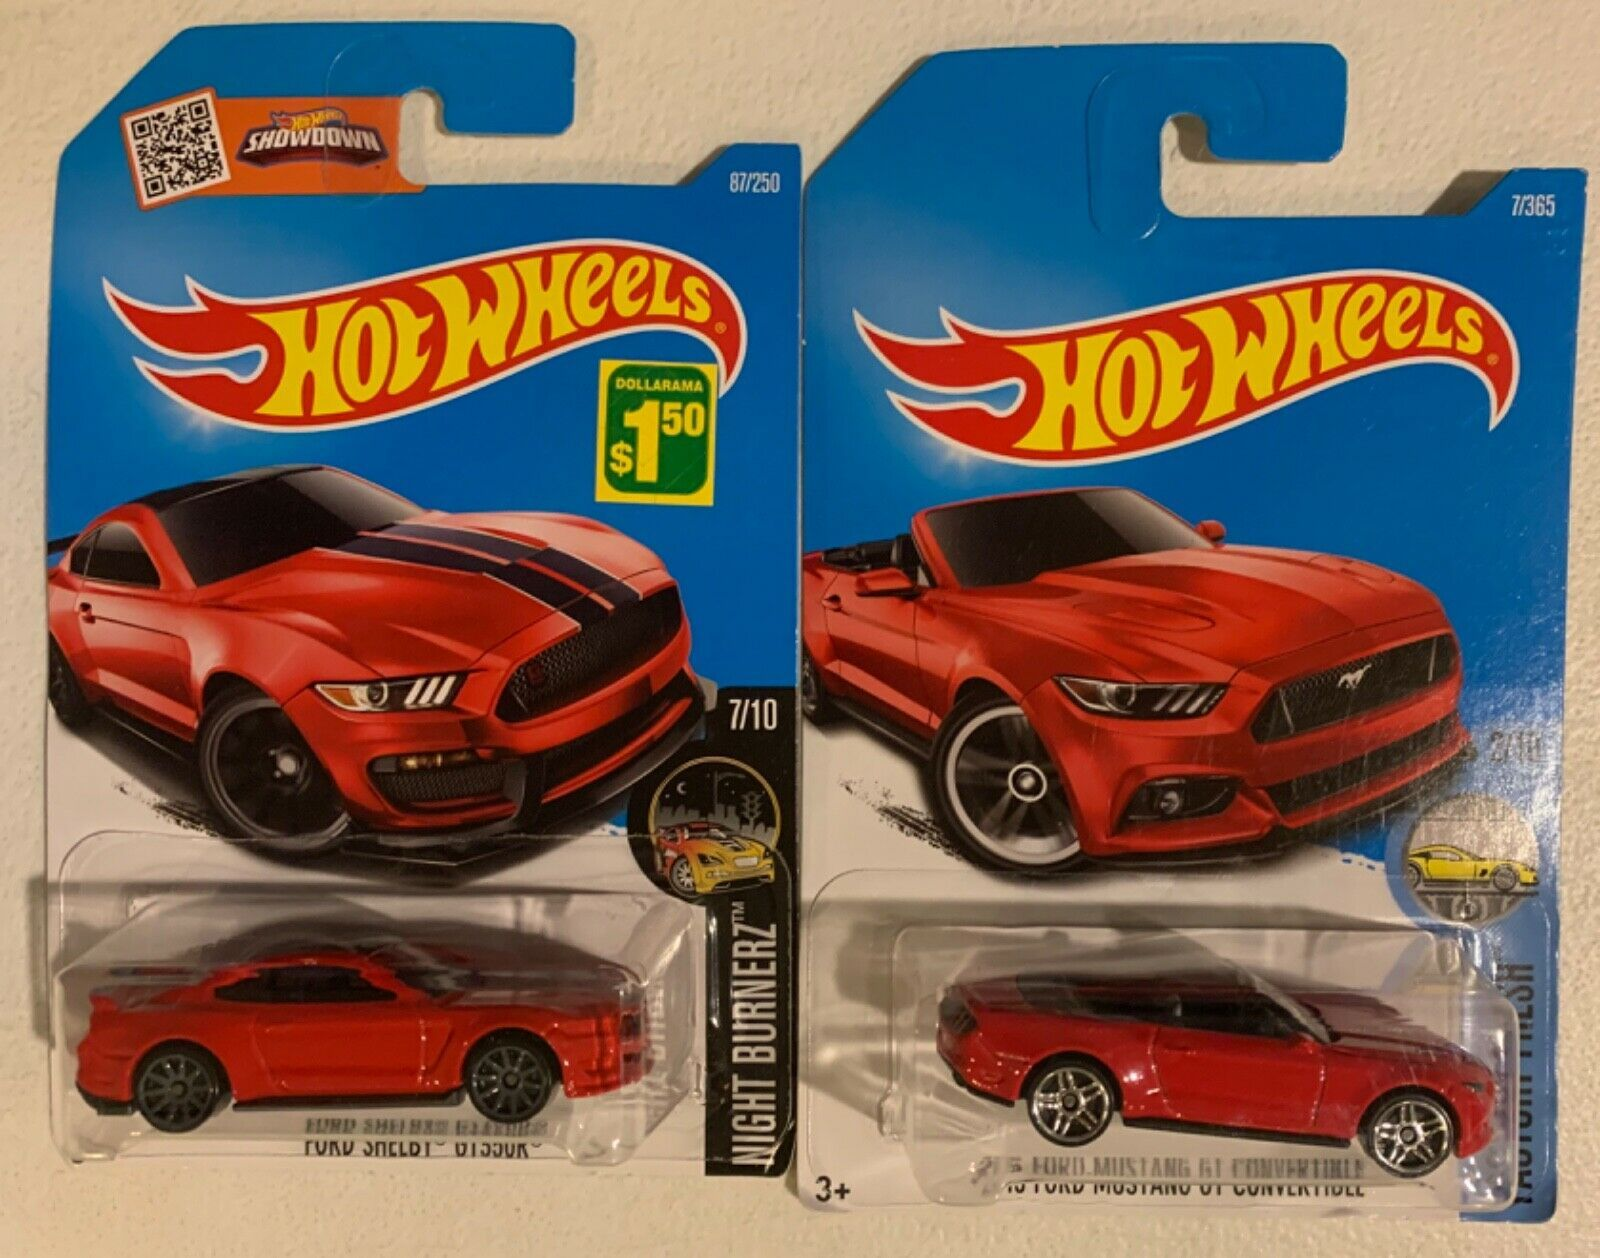 Hot Wheels Ford Mustang Lot Of 2 2015 Shelby Gt350r And 2015 Convertible Shelby Gt350r Hot Wheels Ford Mustang